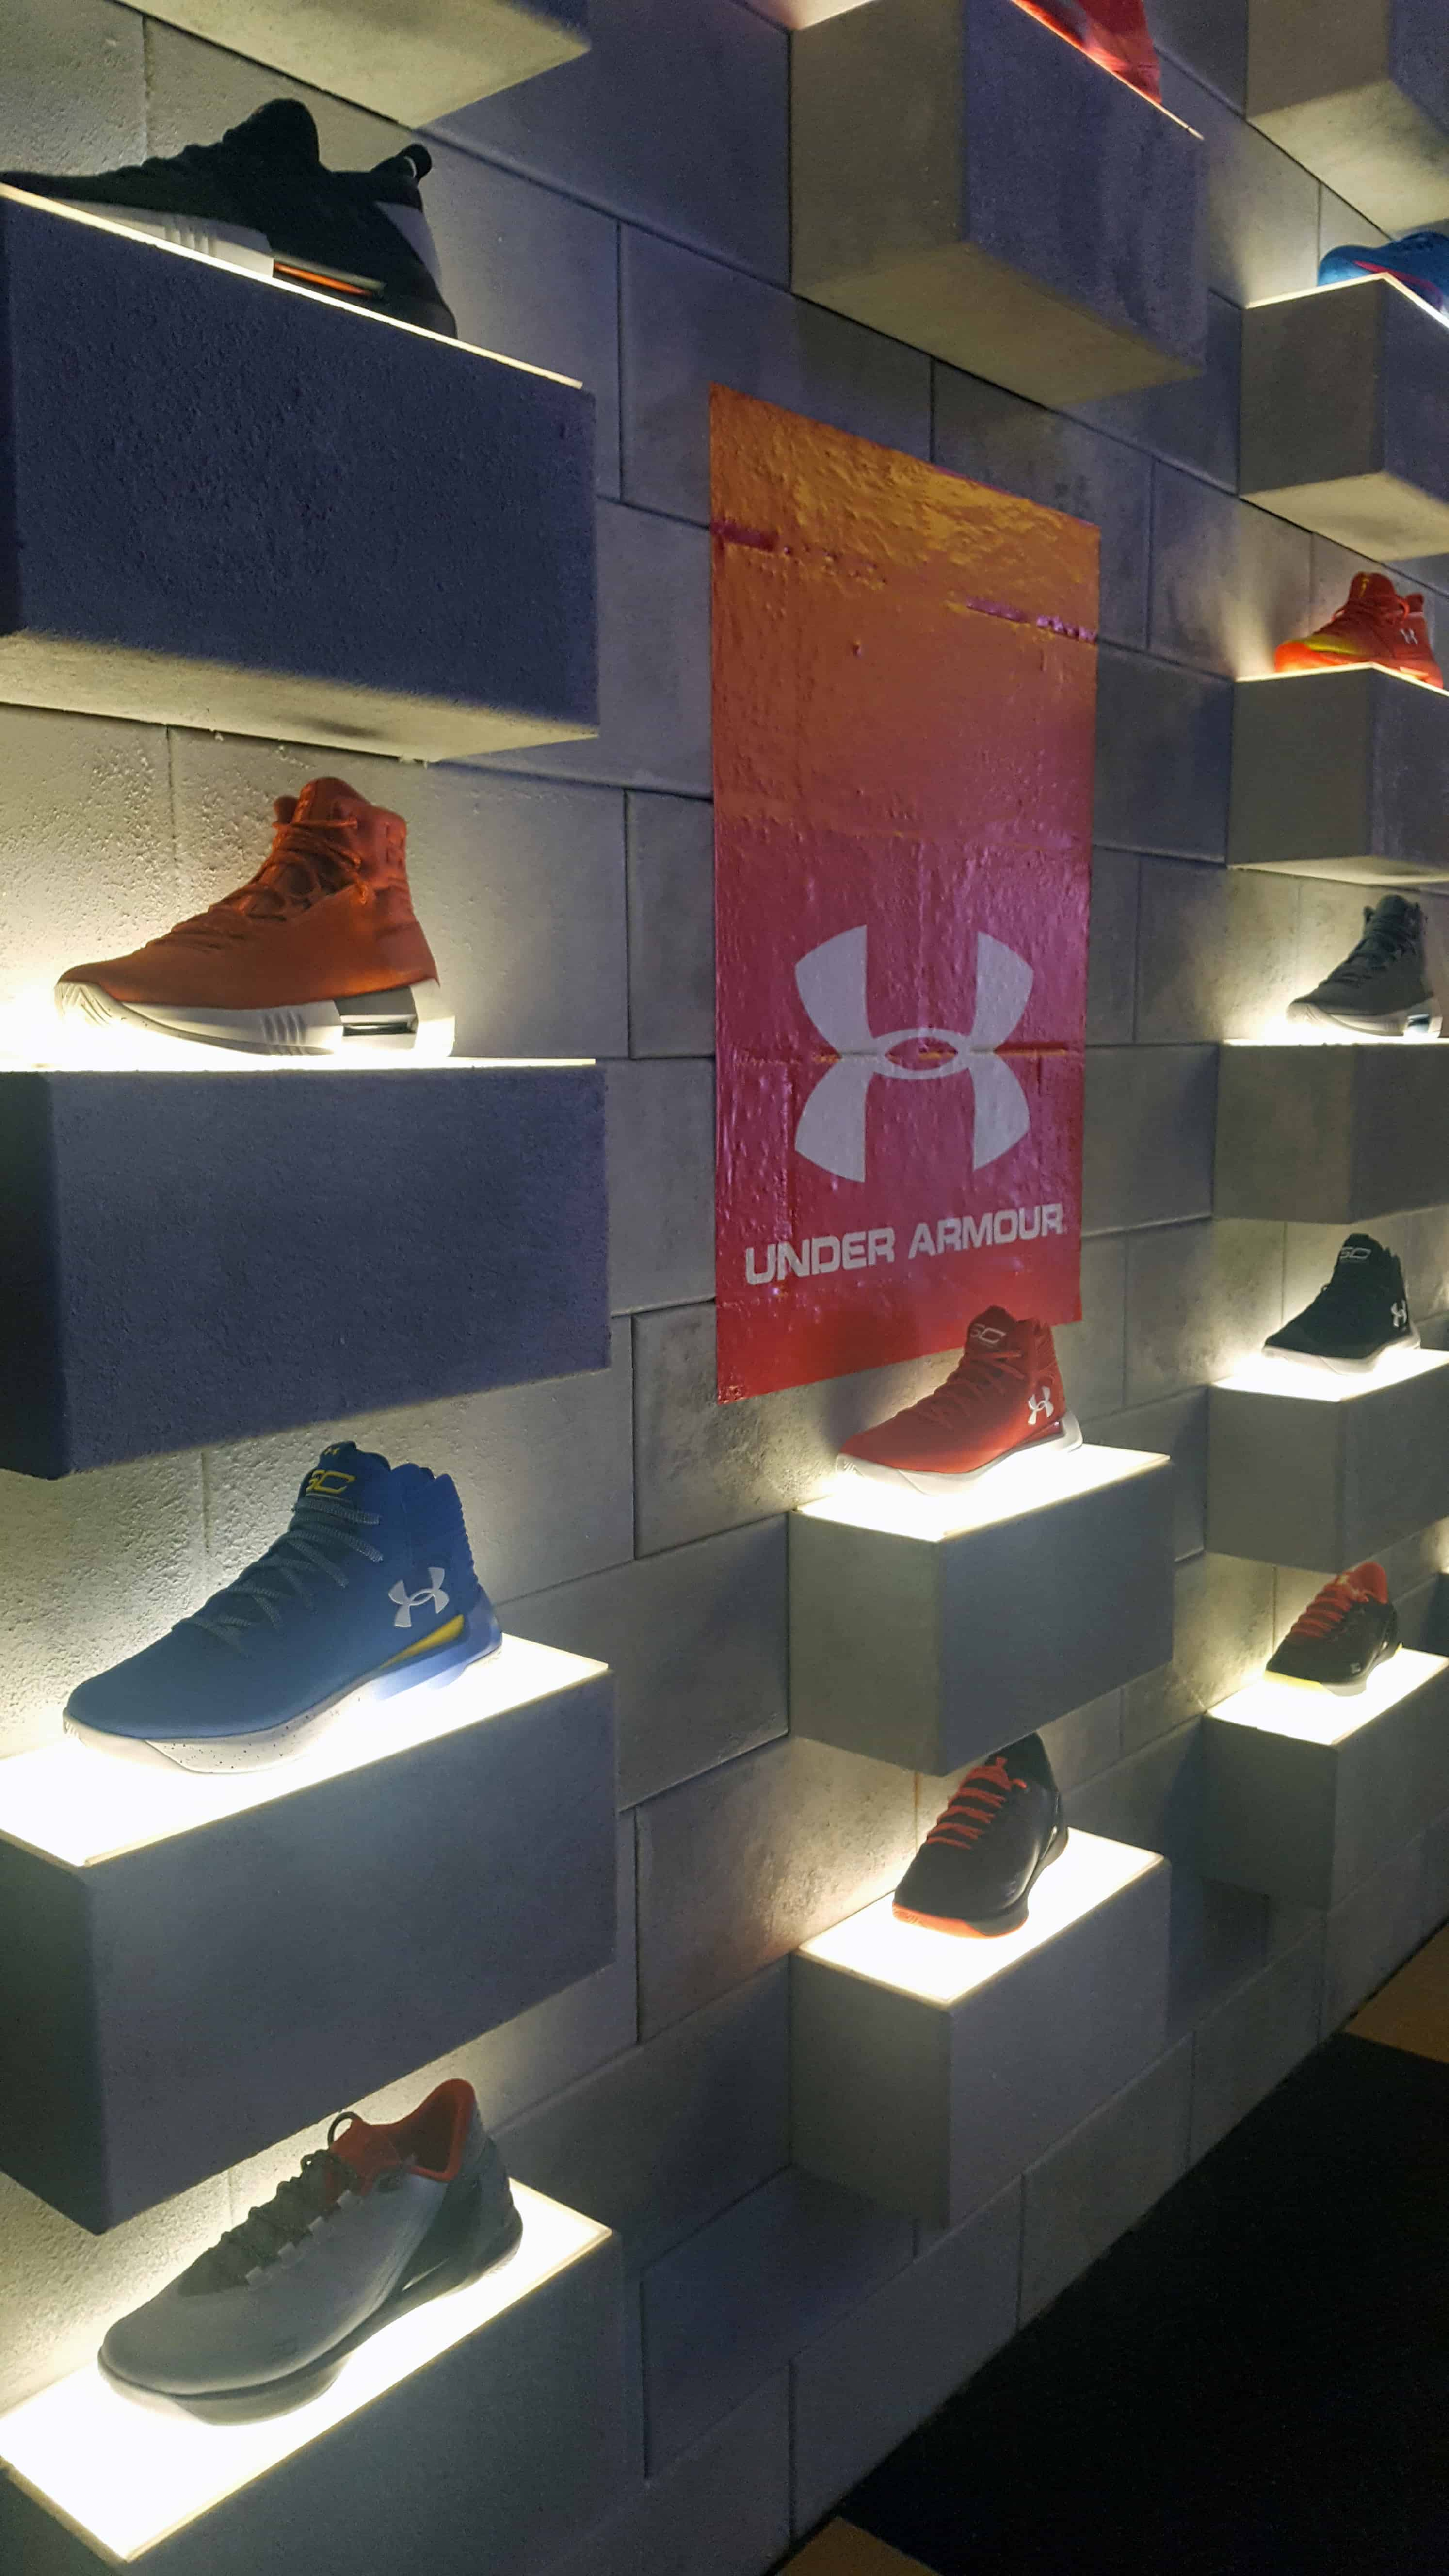 Under Armour sneakers displayed on wall